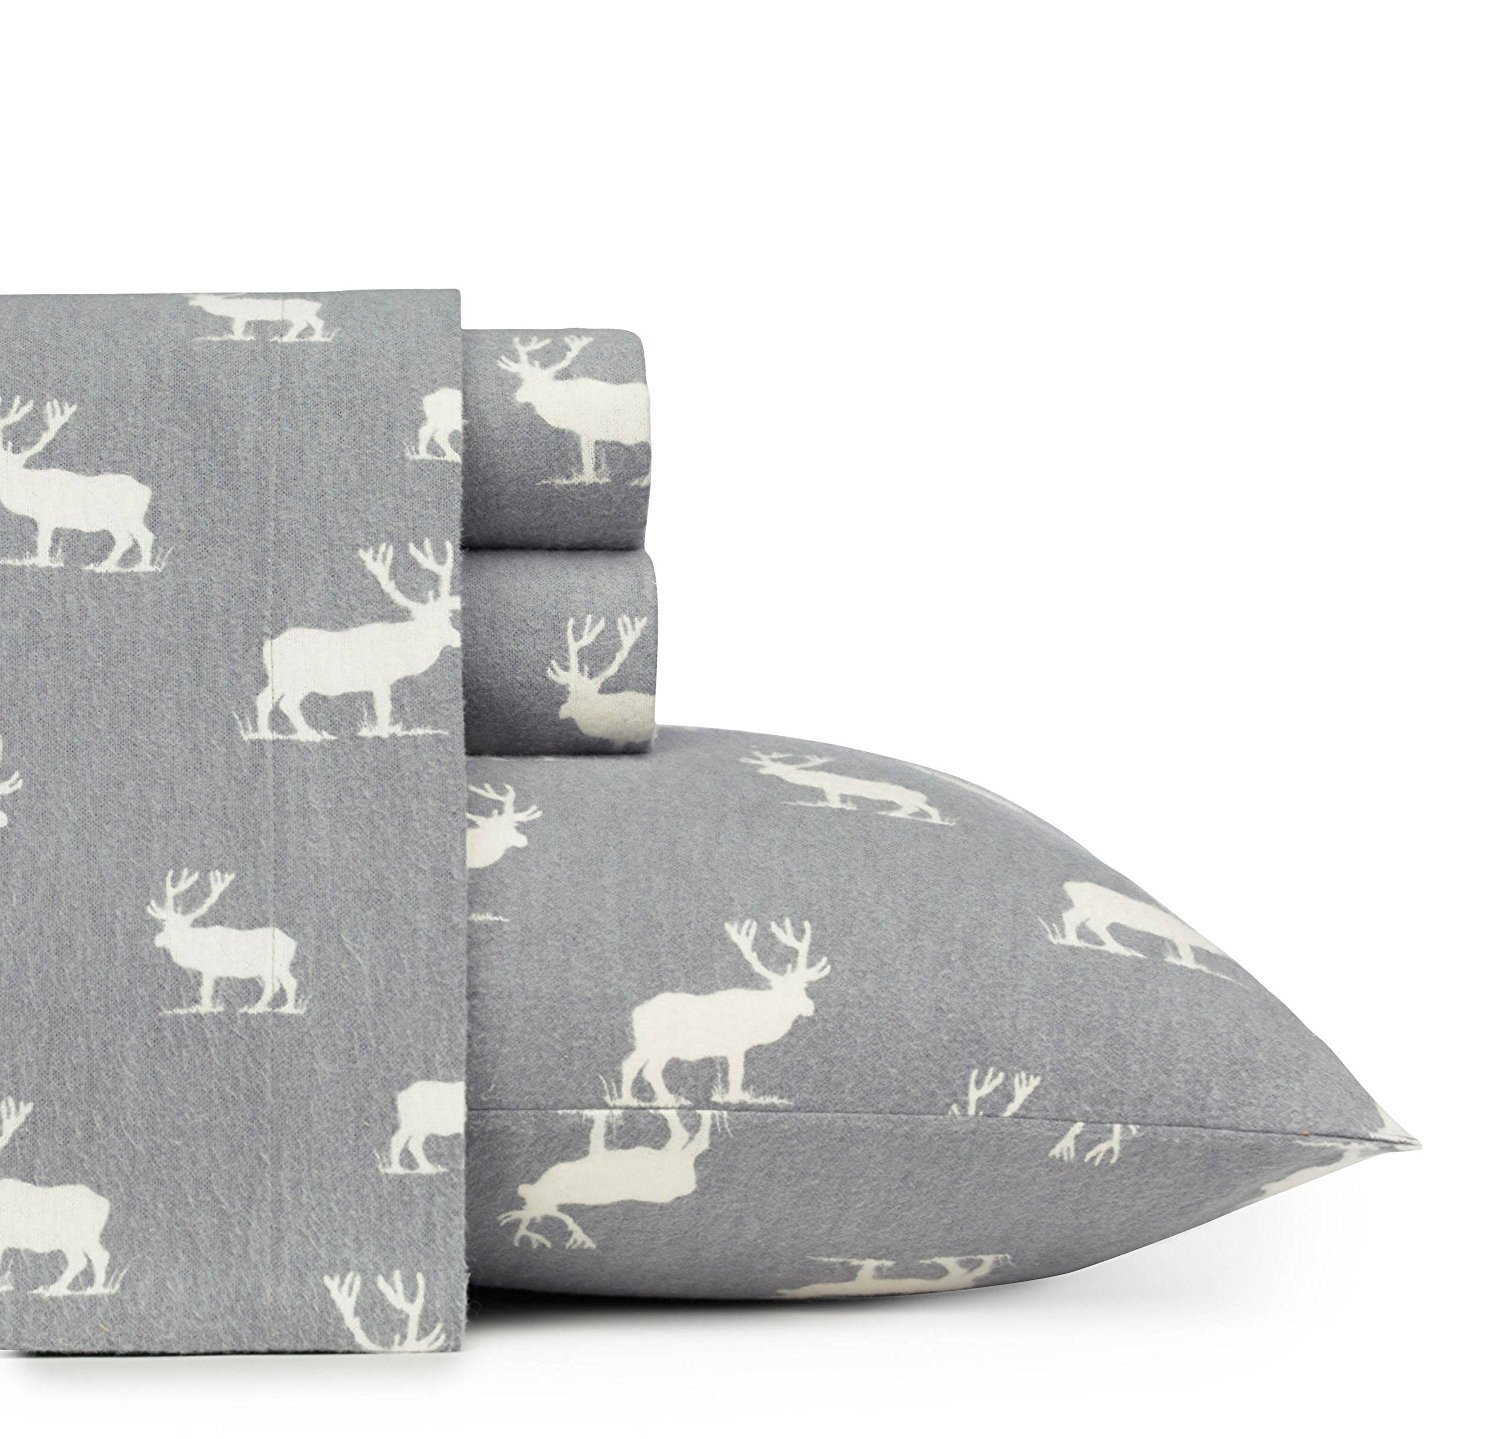 MISC 4pc Rustic Grey Elk Deer Theme Sheets Queen Set, Cotton Flannel, Southwestern, Deep Pocket, Cabin Lodge Cottage, Fully Elasticized Fitted, Animal